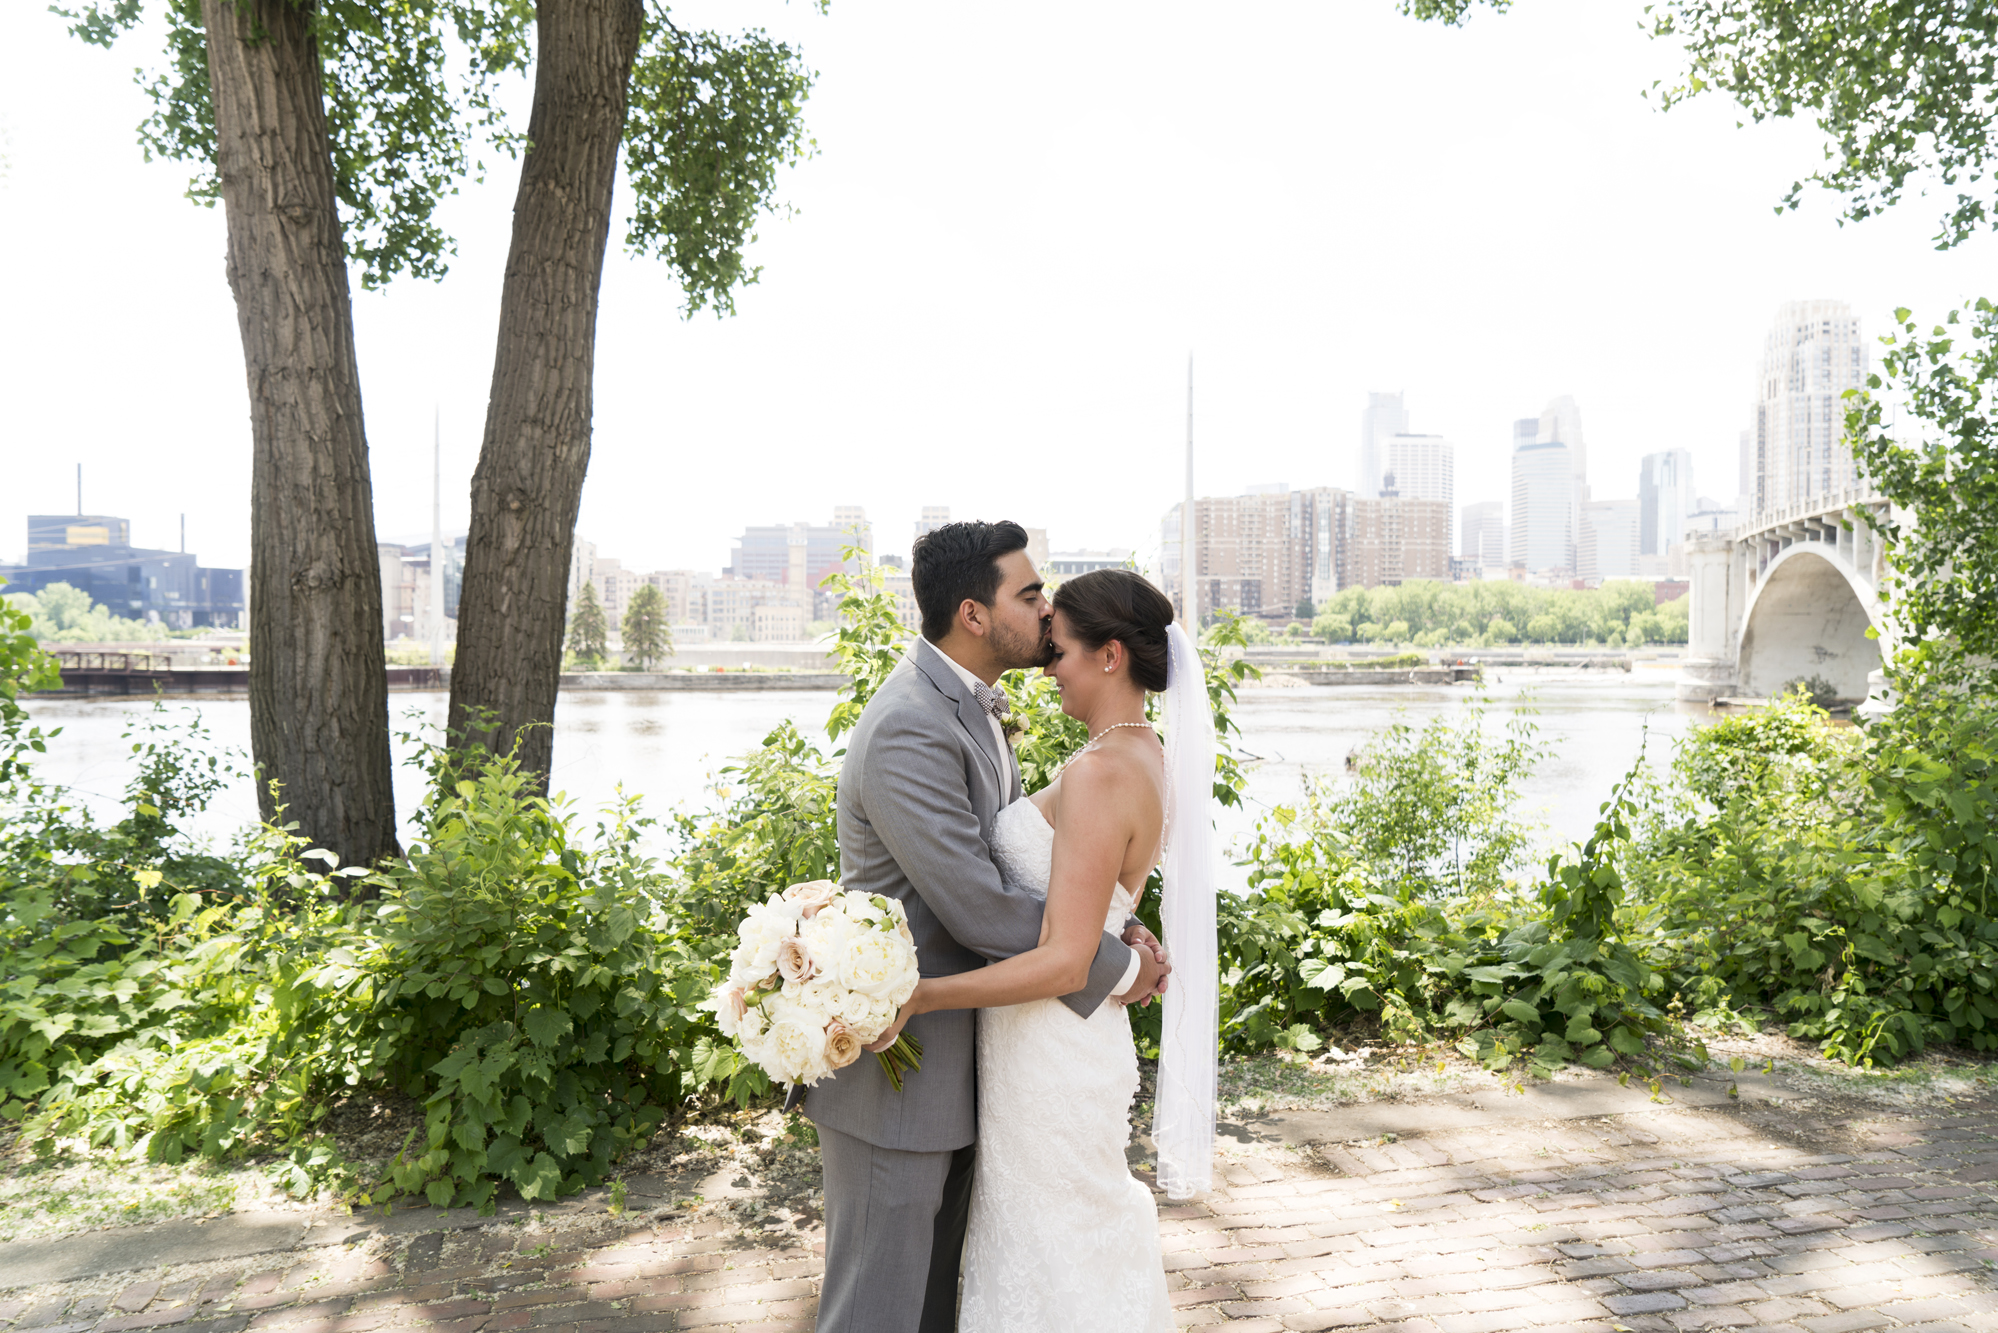 Outdoor Wedding Photos Minneapolis | Photography by Melissa Hesse | Rivets & Roses